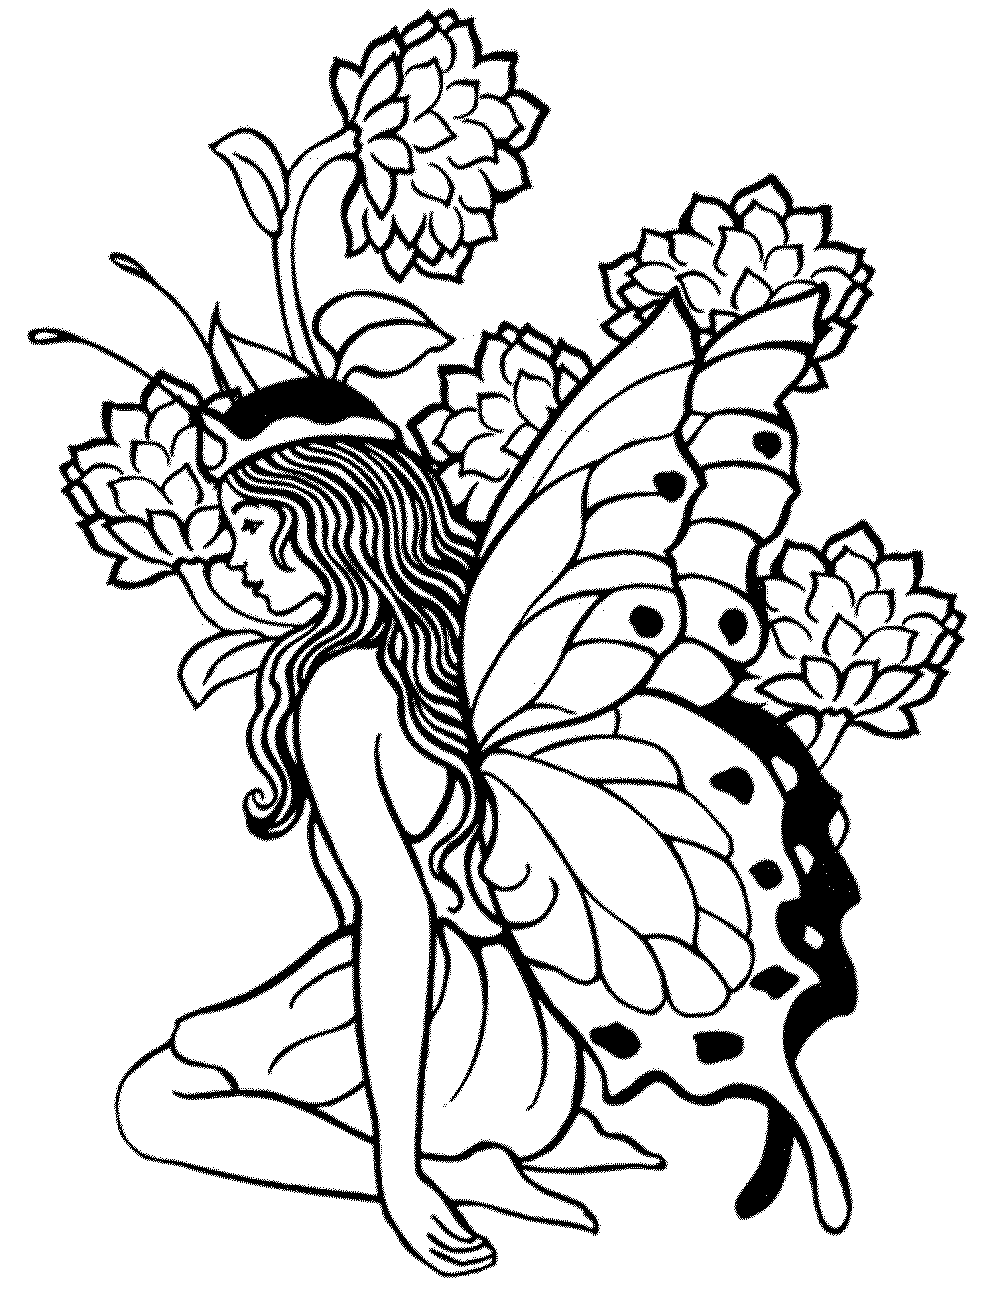 Sexy fairies coloring pages for teens, free image hosting xxx but